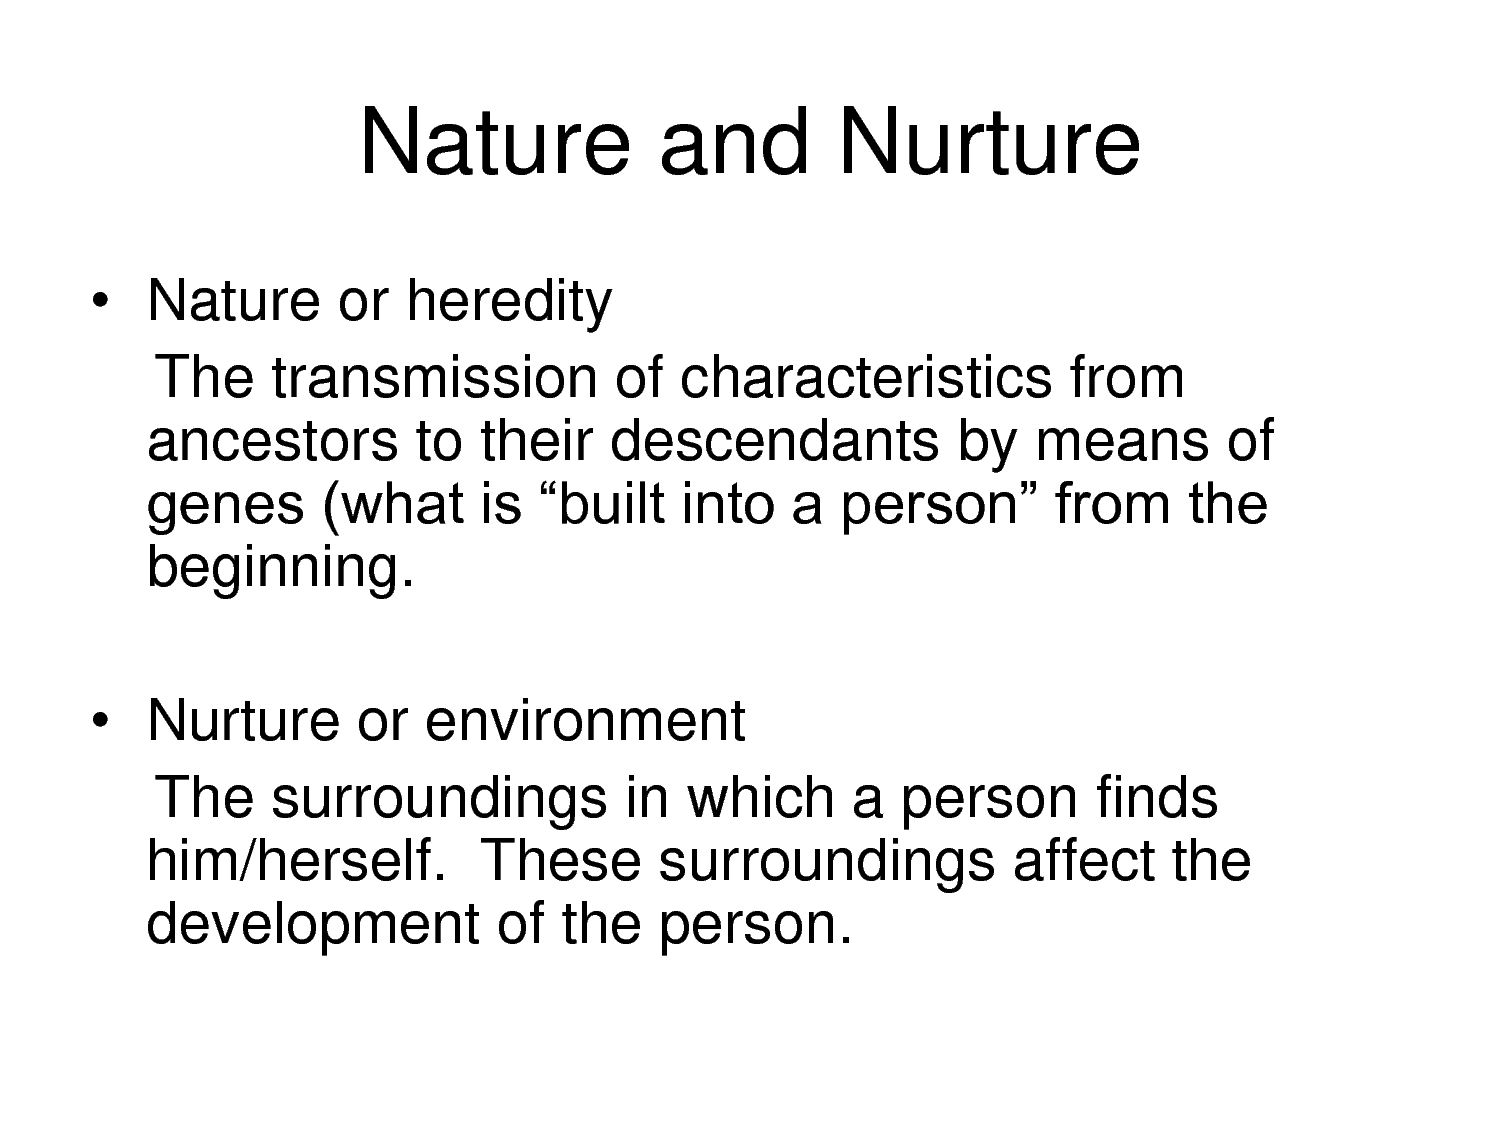 an essay on nature vs nurture Is a child's development influenced by genetics or could the majority of influence be found in the child's environment the nature vs nurture debate has been at the forefront of psychology for many decades the purpose of this essay is to try and answer this question using the case study of genie.